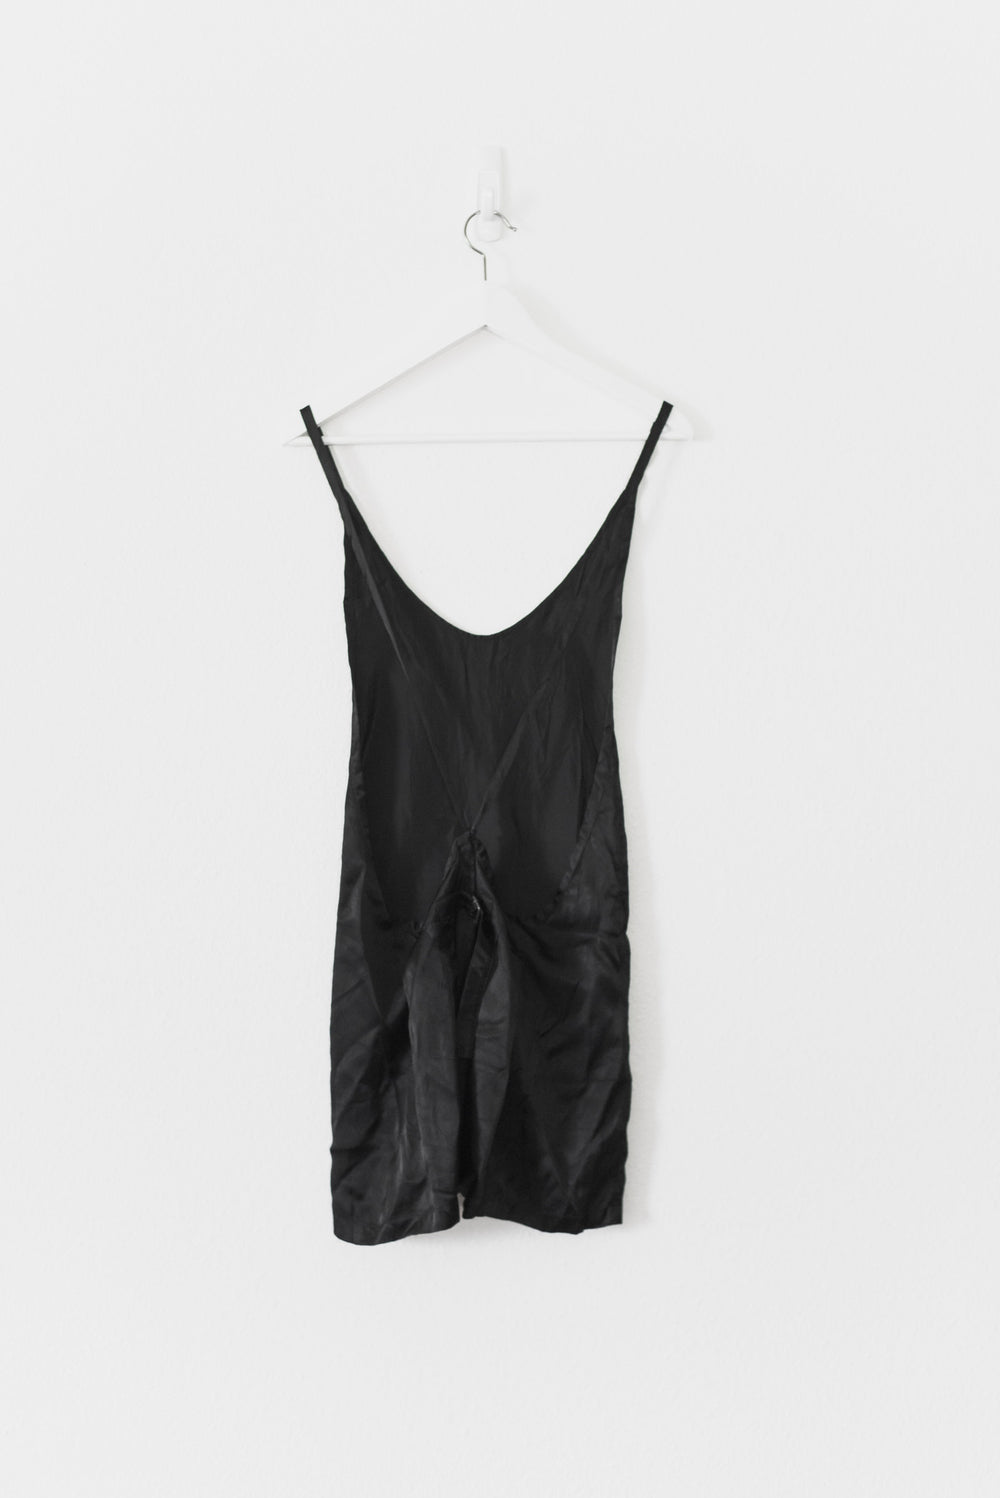 Ann Demeulemeester Slip Dress